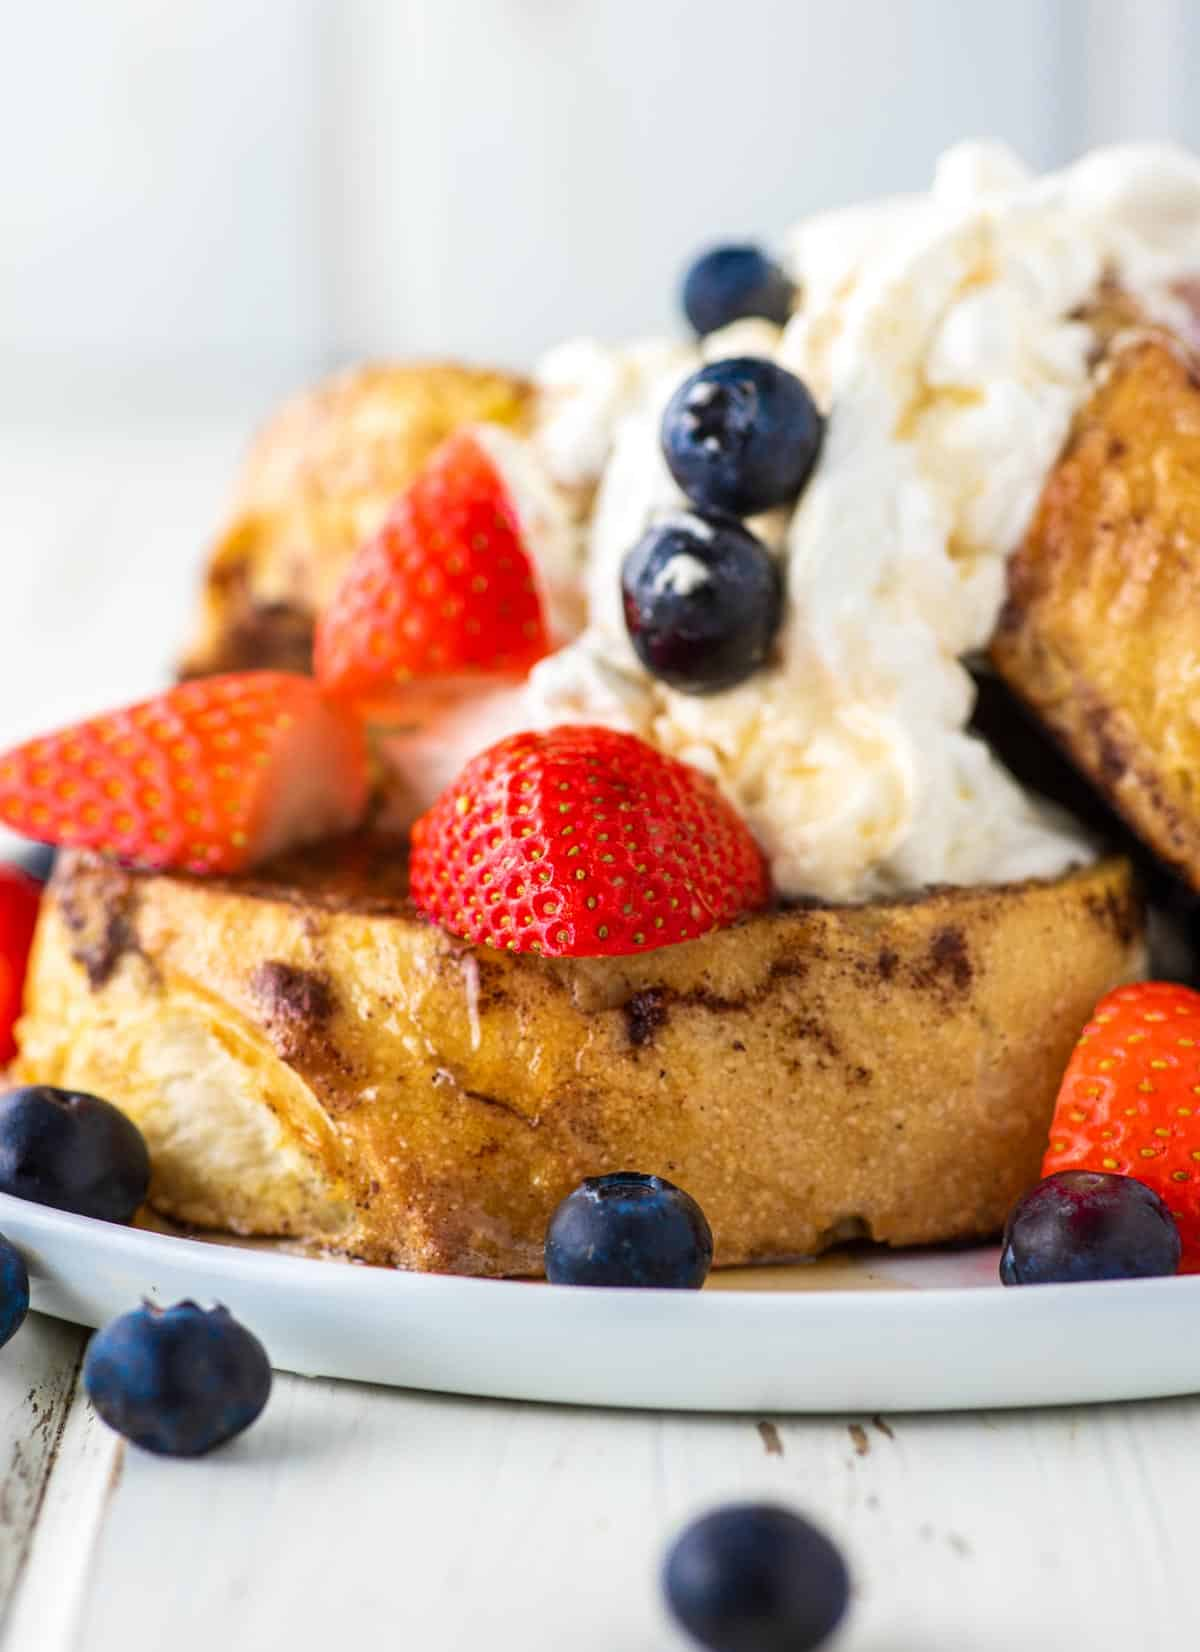 sourdough French toast stacked on white plate with whipped cream and fruit